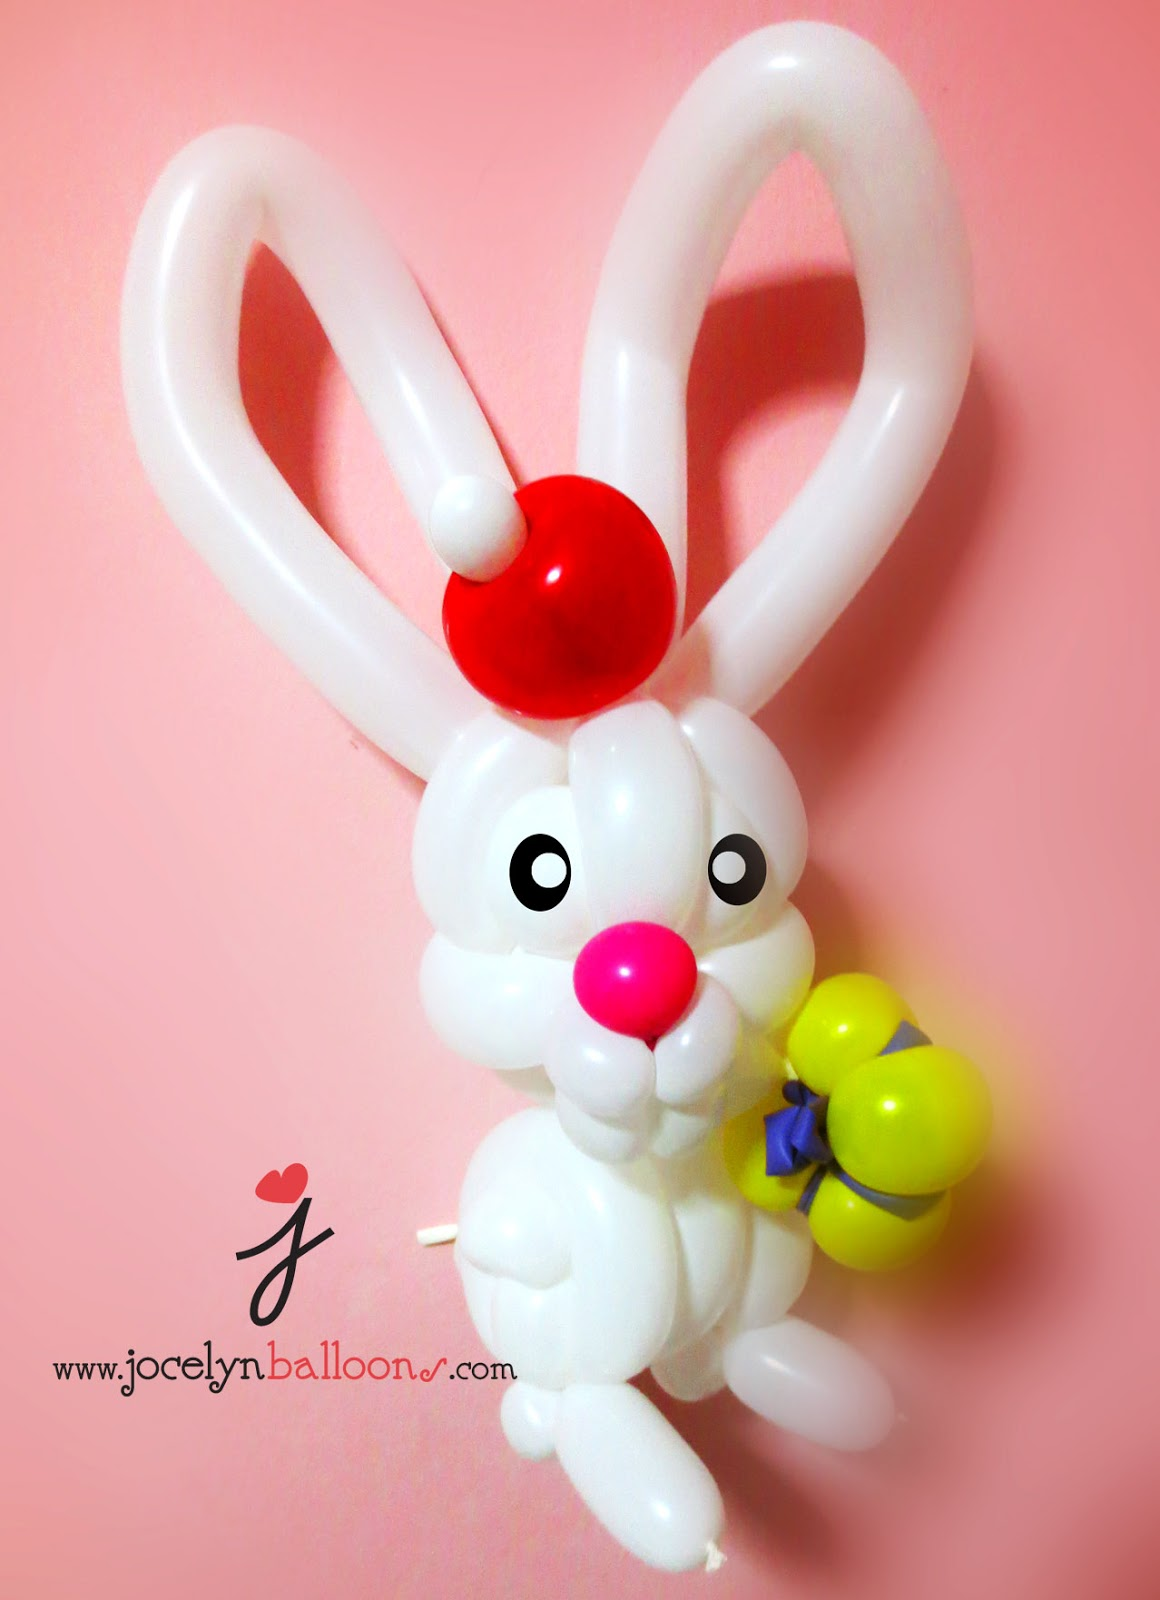 Birthday Balloons Singapore Jocelyn Ng Professional Balloon Artist Blog | Balloon